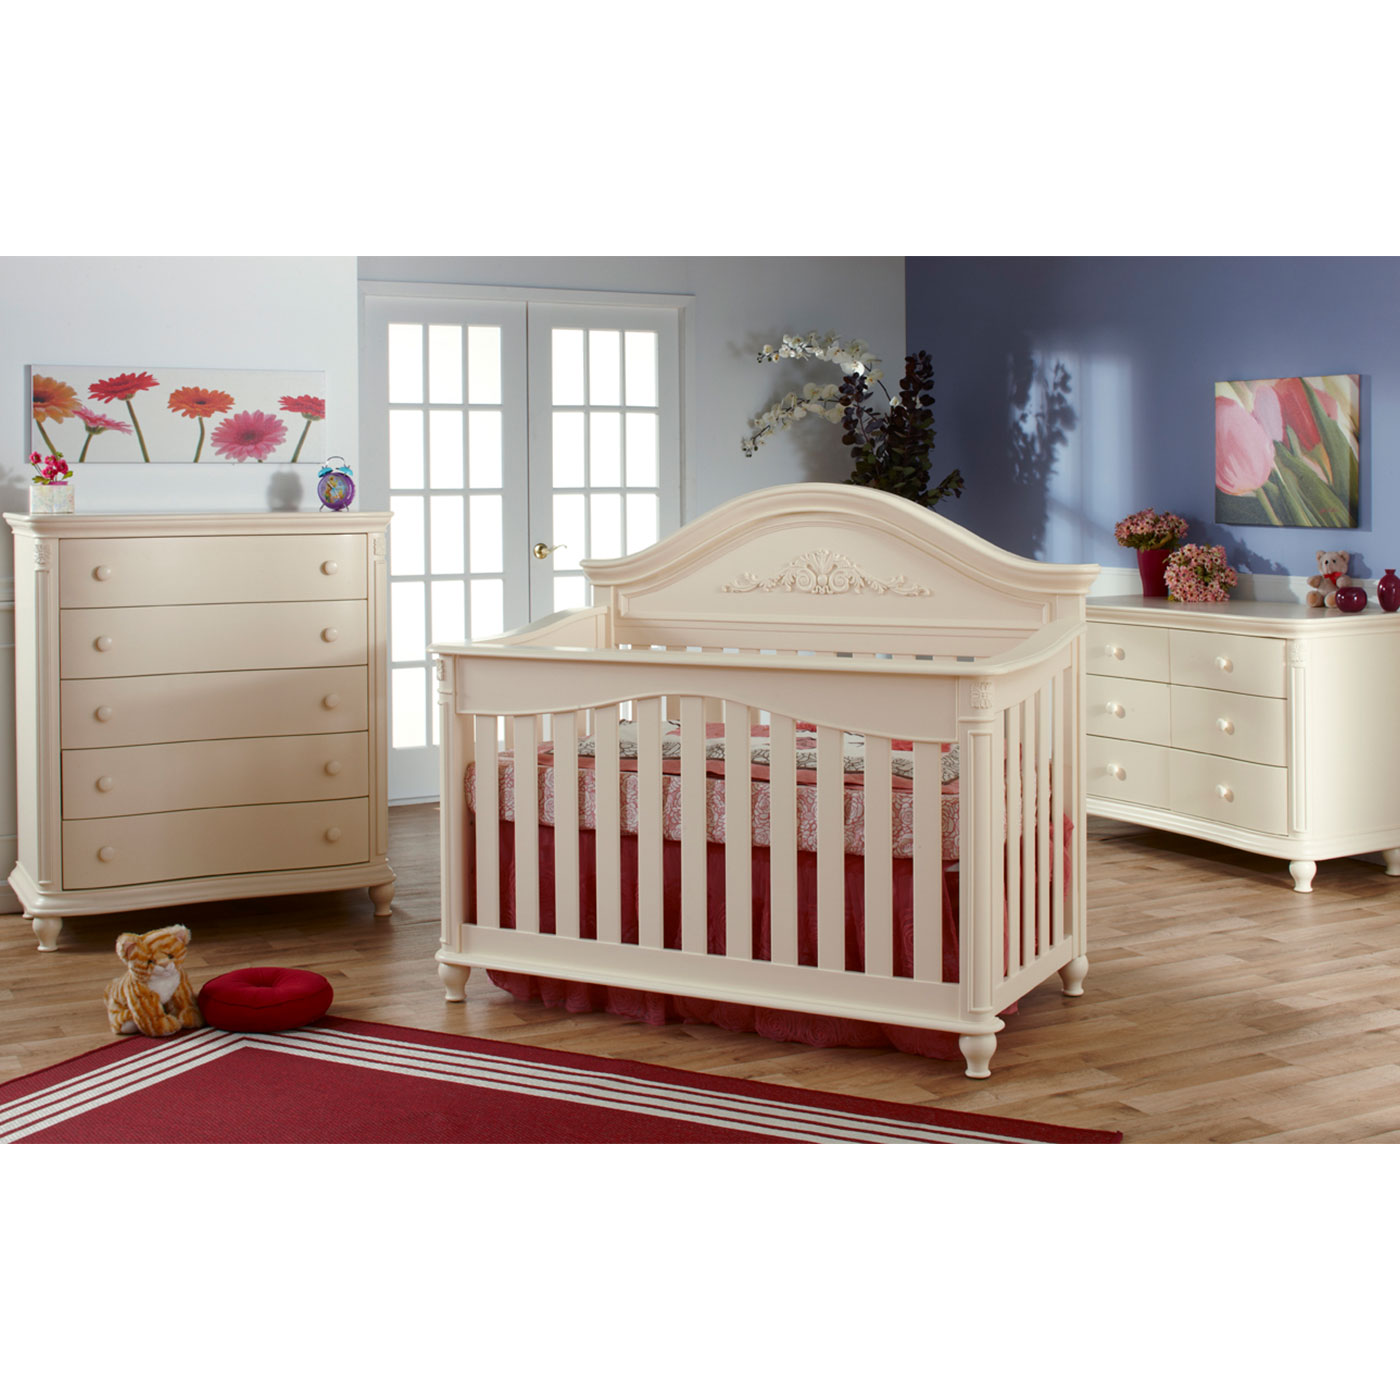 Pali crib for sale used - Pali Crib For Sale Used 44